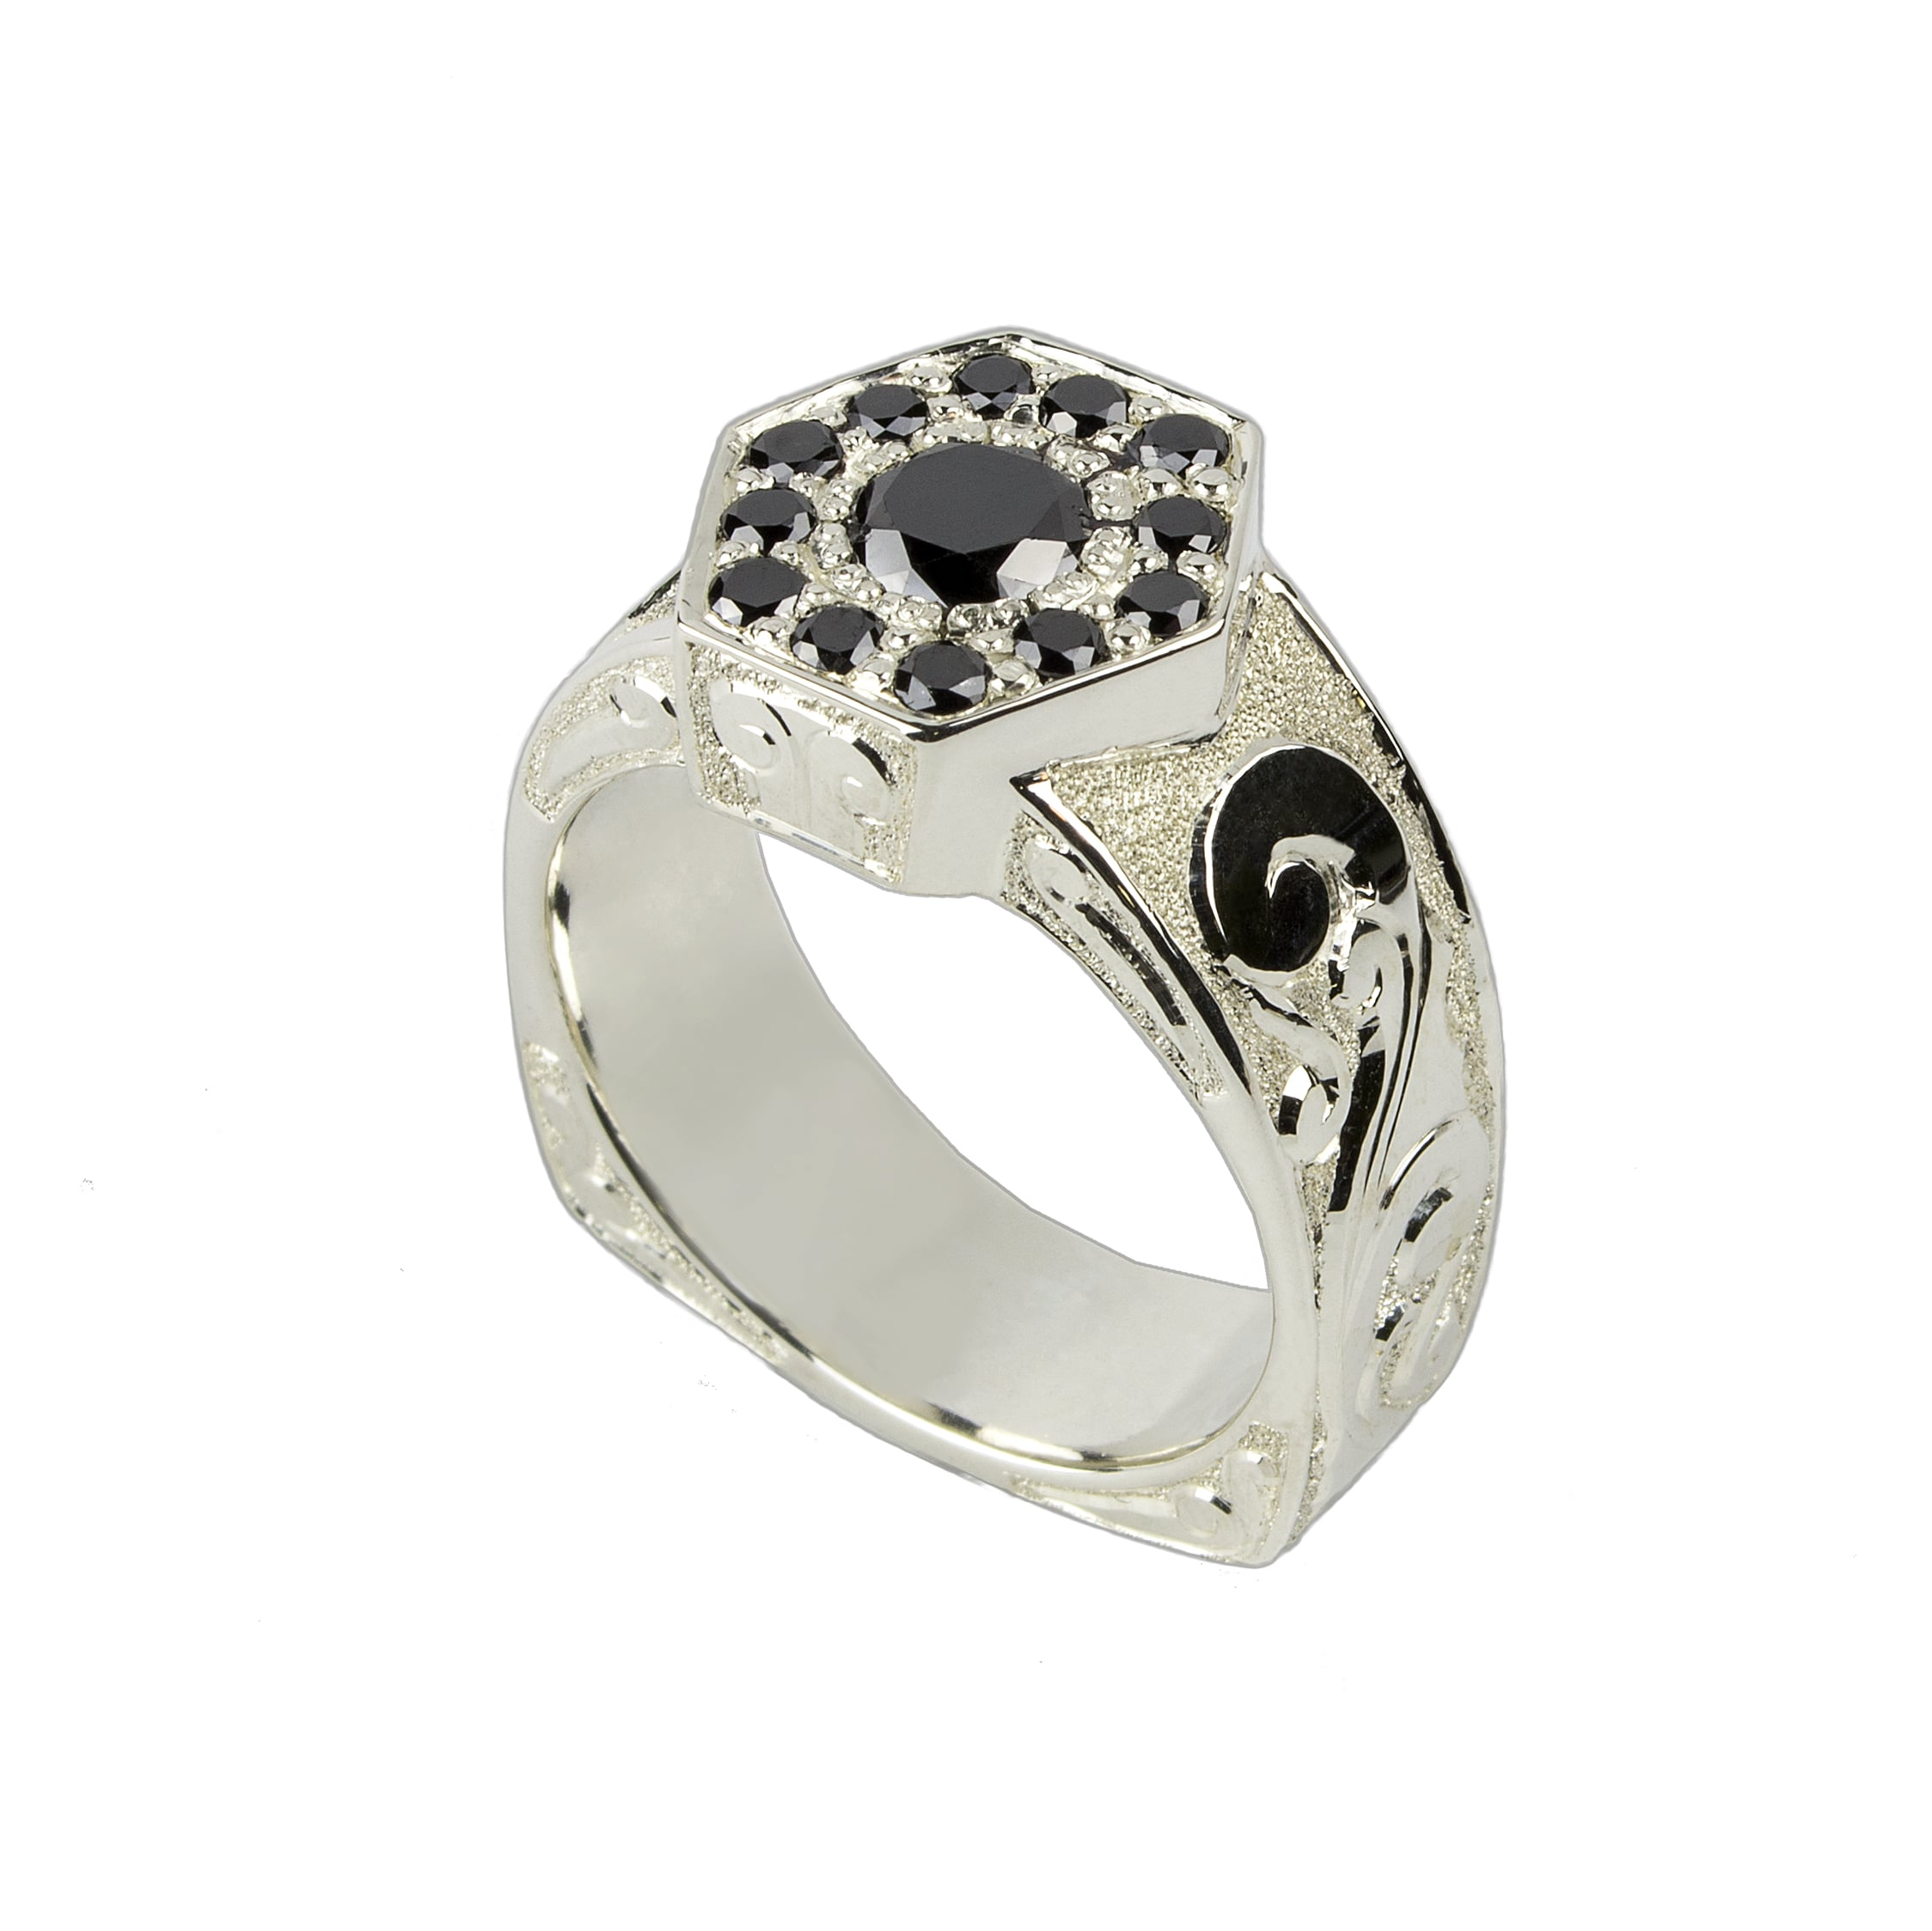 Hand Engraved Sterling Silver Ring with Black Diamonds by Waylon Rhoads Jewelry